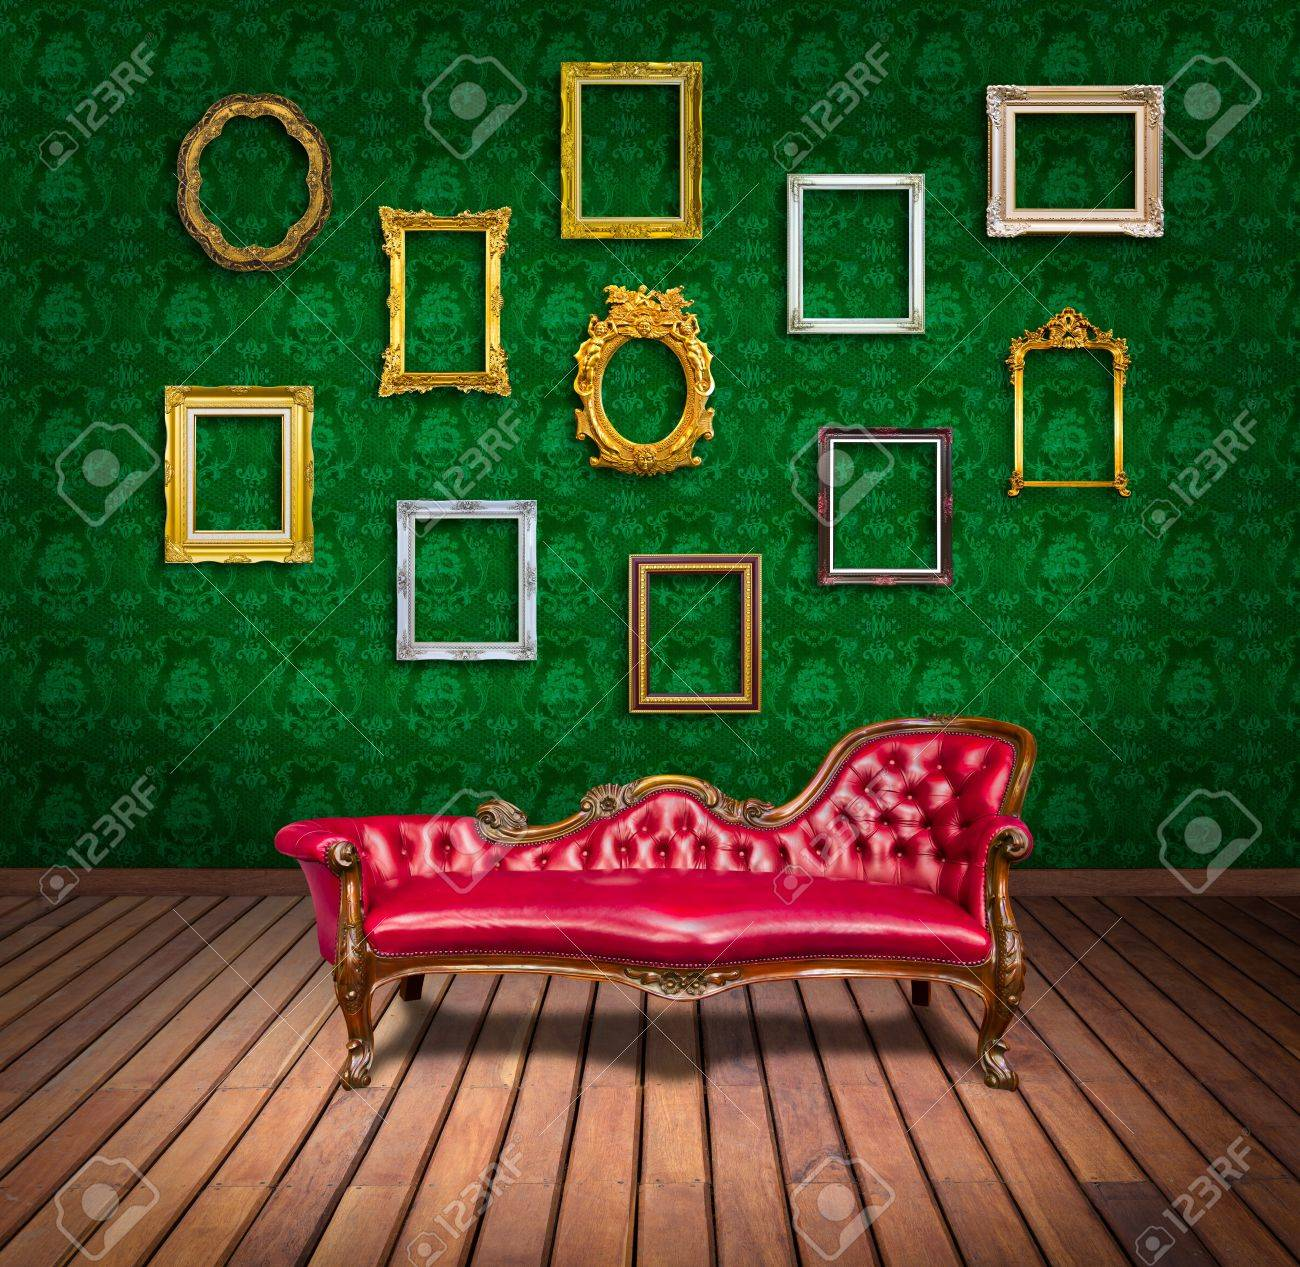 vintage luxury armchair and frame in  room Stock Photo - 13104832